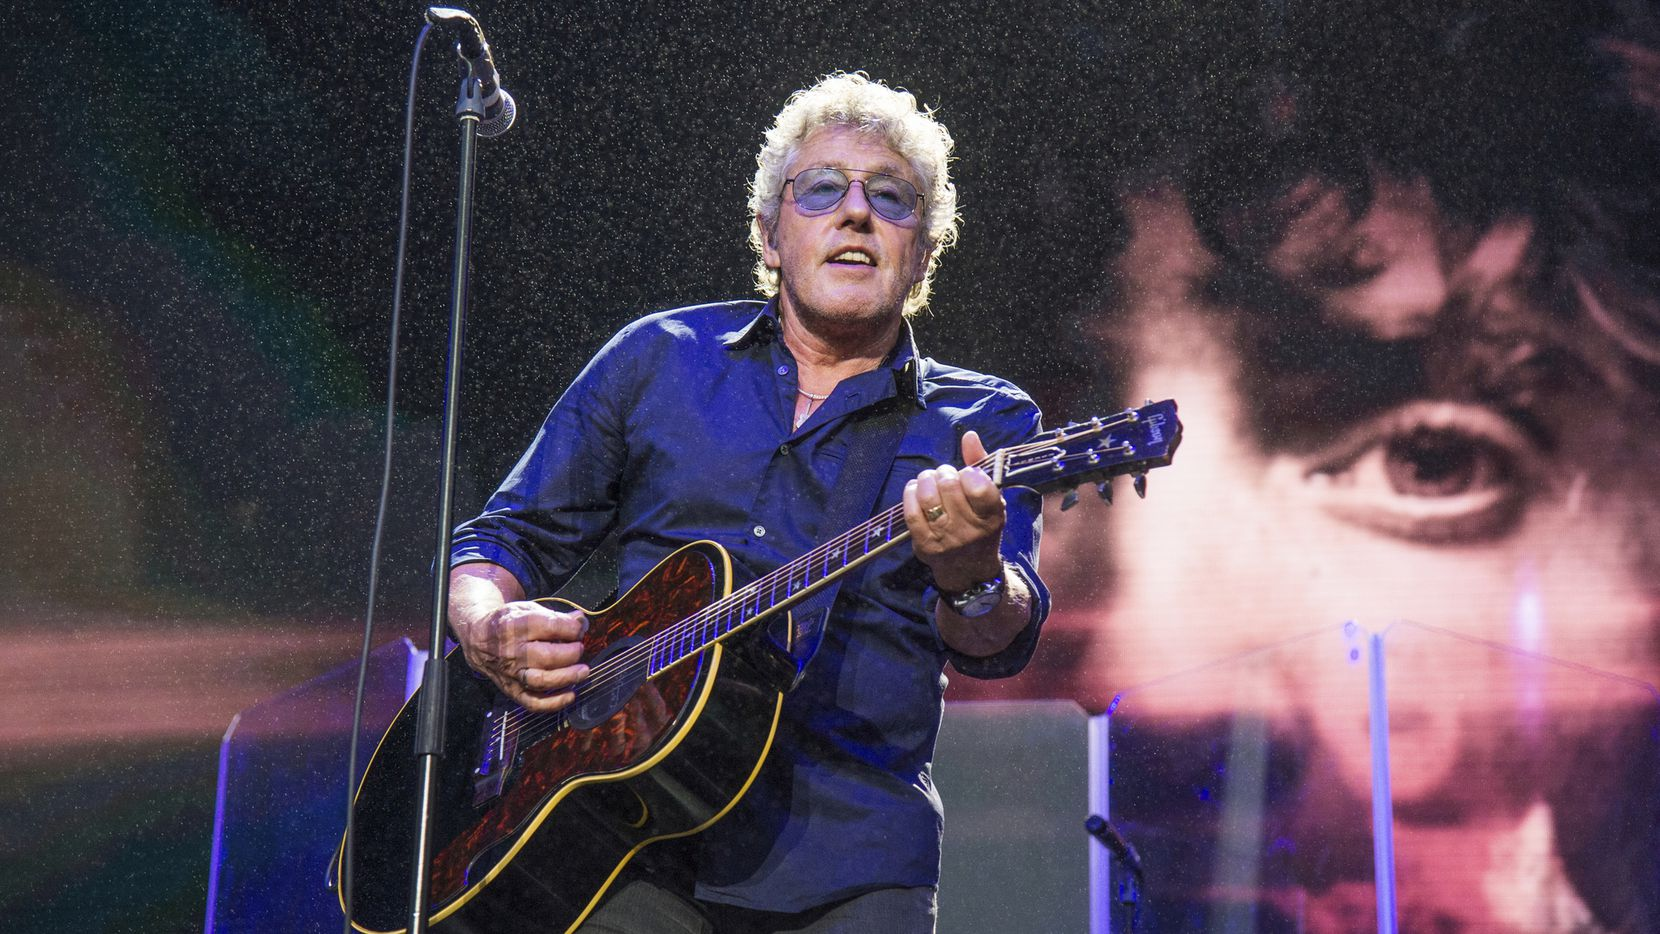 In this Aug. 13, 2017 file photo, Roger Daltrey of The Who performs at the 2017 Outside Lands Music Festival at Golden Gate Park in San Francisco.